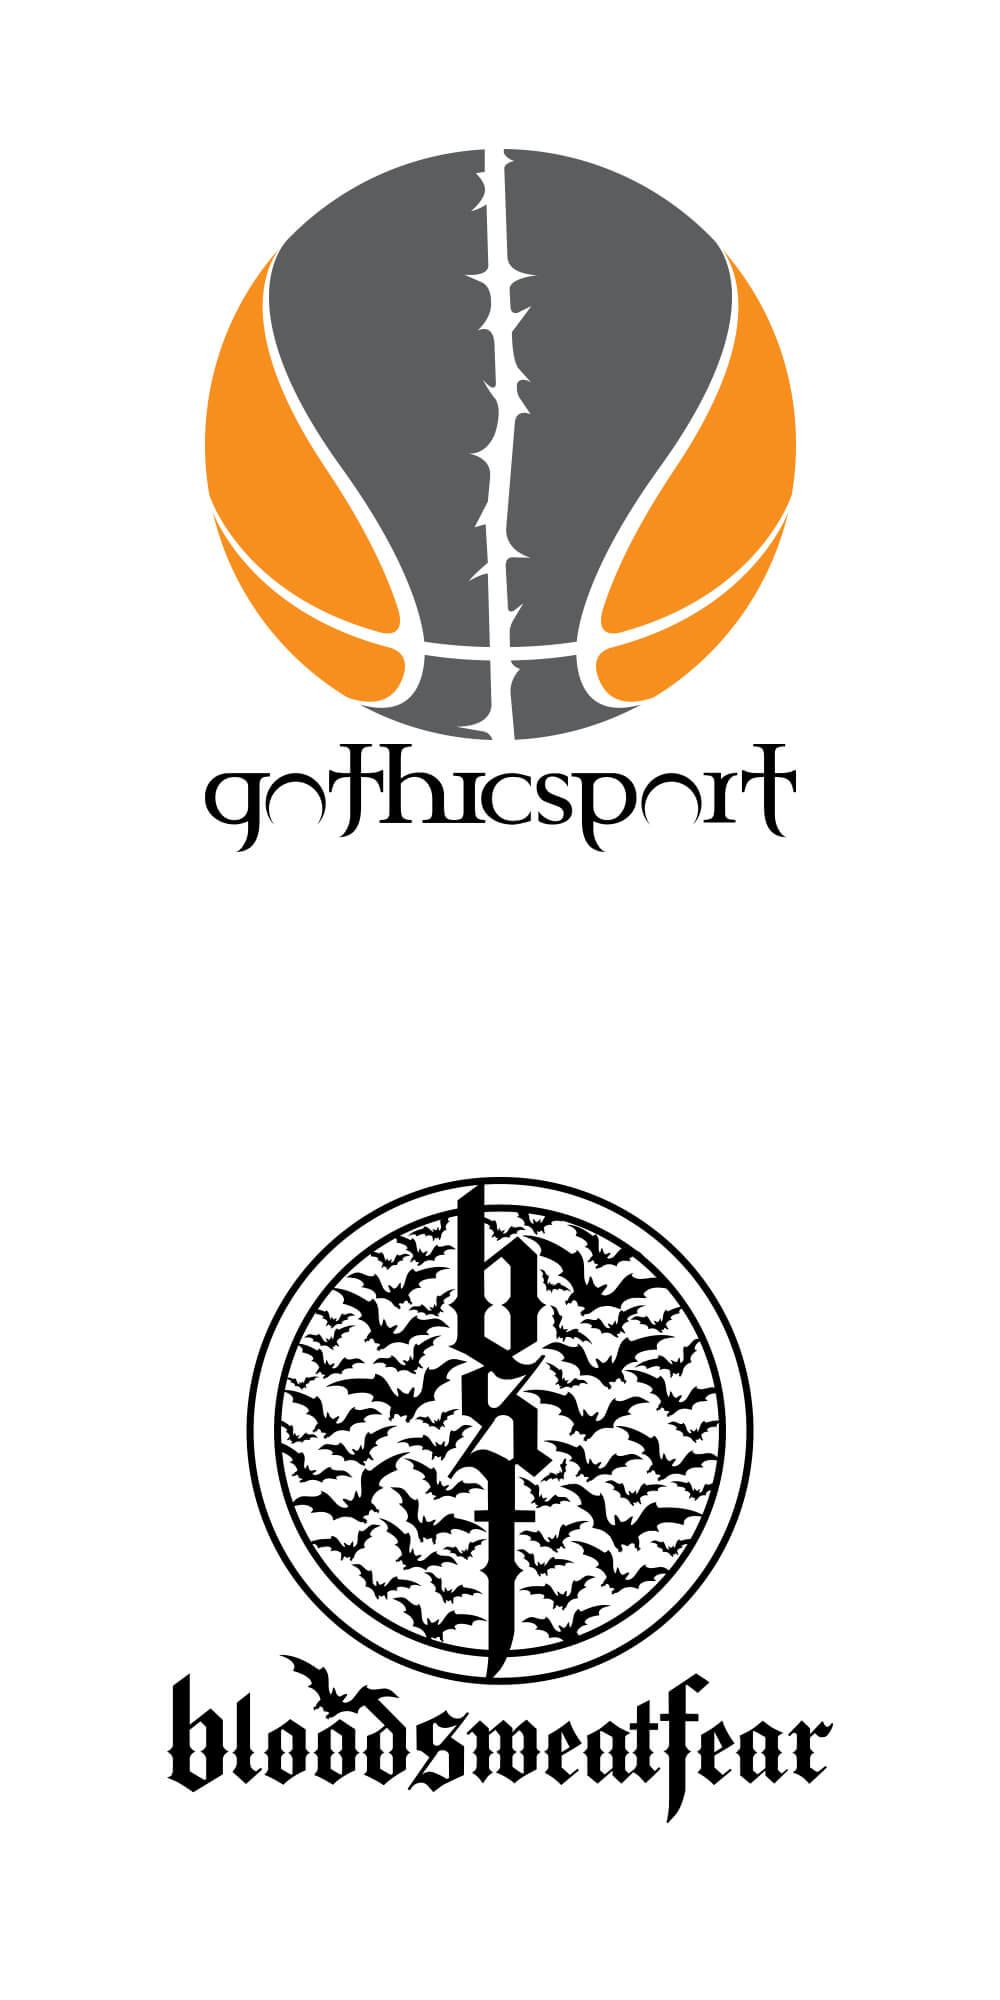 GothicSport / Blood, Sweat, Fear